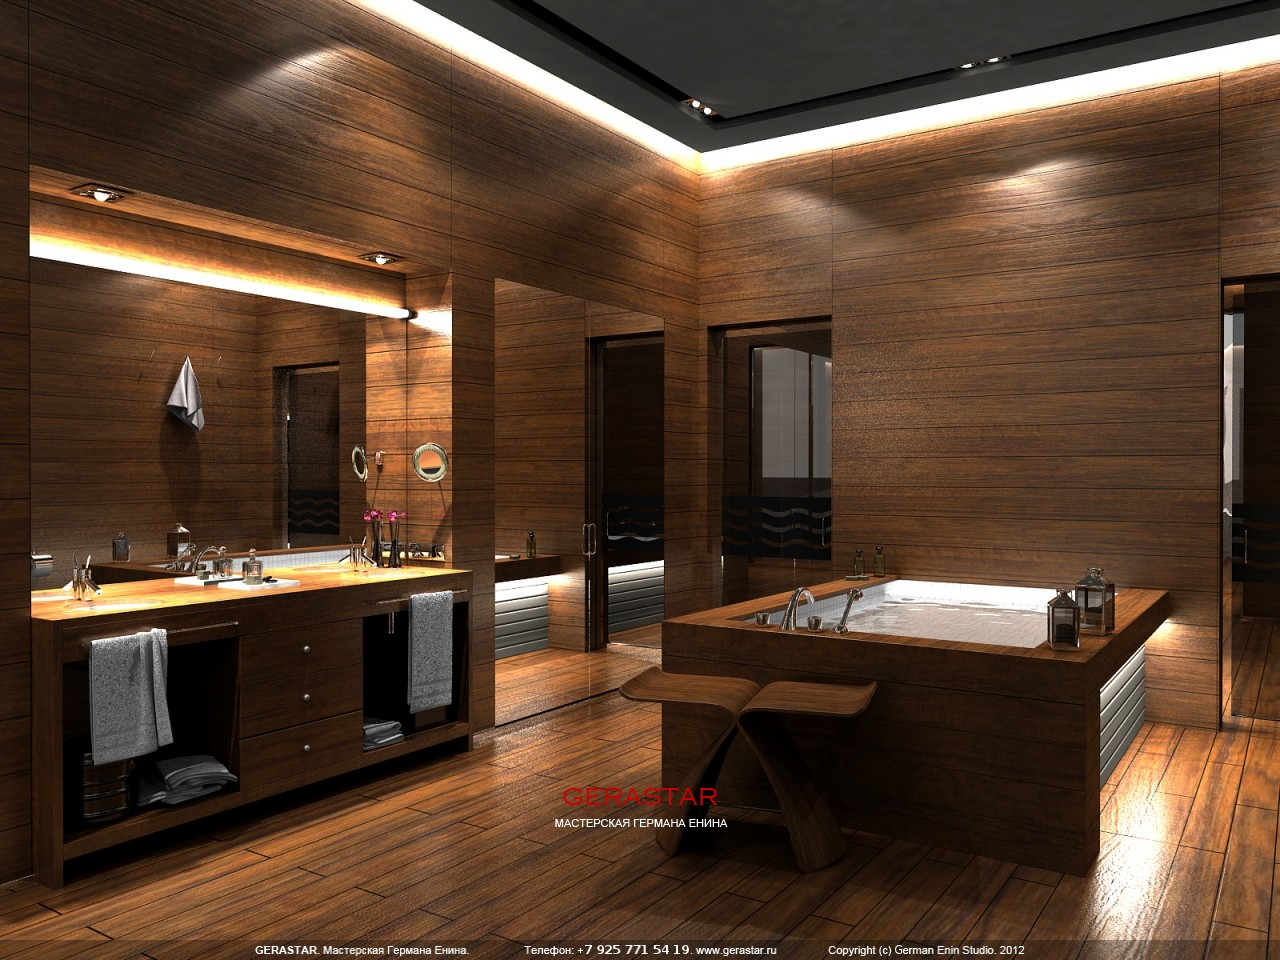 Etonnant Design, Bathroom Designer, Enin German, Design Bureau, Gerastar,